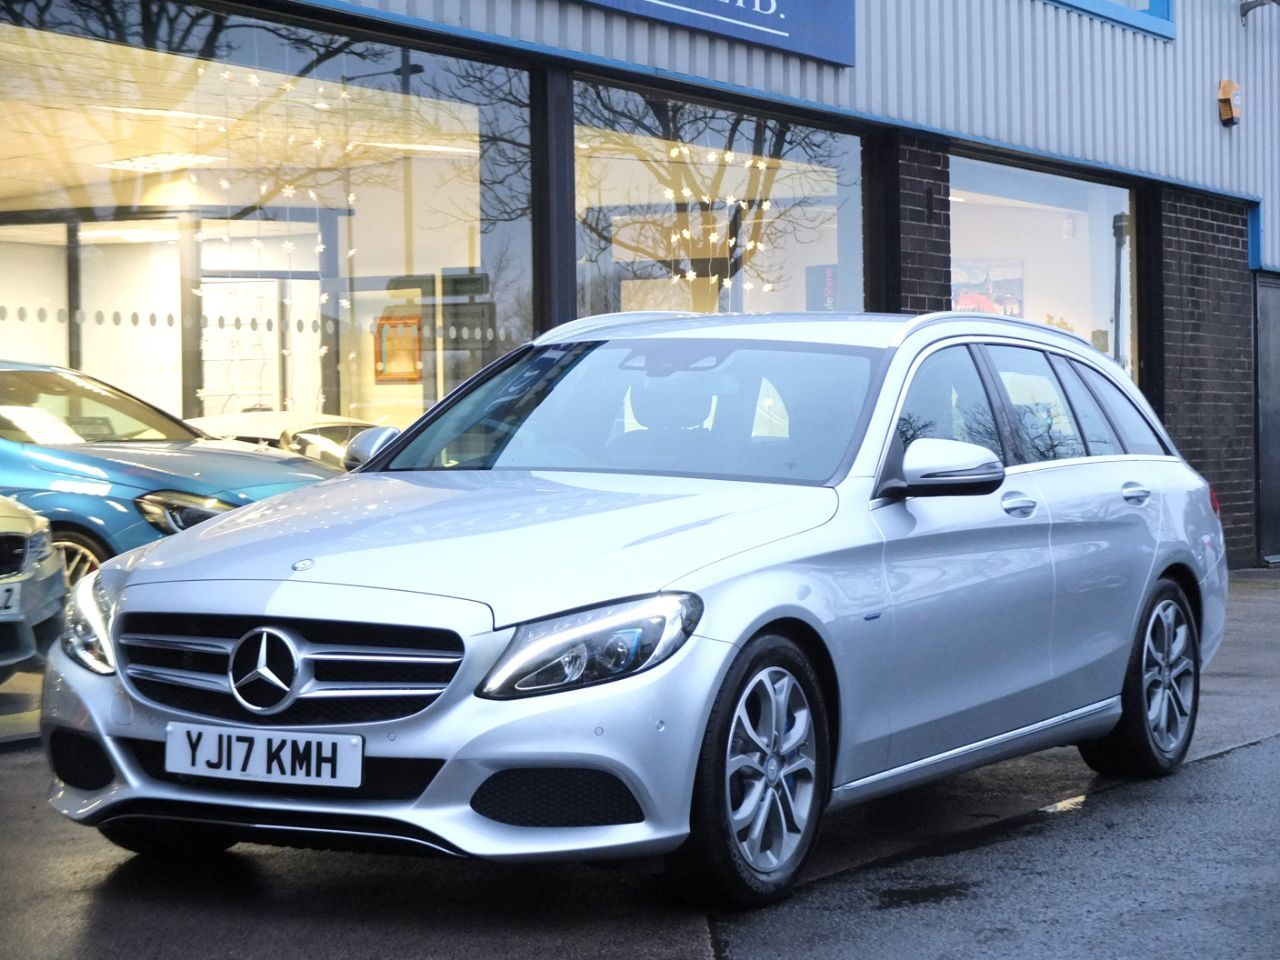 Mercedes-Benz C Class 2.0 C350e Sport PHEV (Electric Plug In Hybrid) Estate Auto Estate Hybrid Iridium SilverMercedes-Benz C Class 2.0 C350e Sport PHEV (Electric Plug In Hybrid) Estate Auto Estate Hybrid Iridium Silver at fa Roper Ltd Bradford